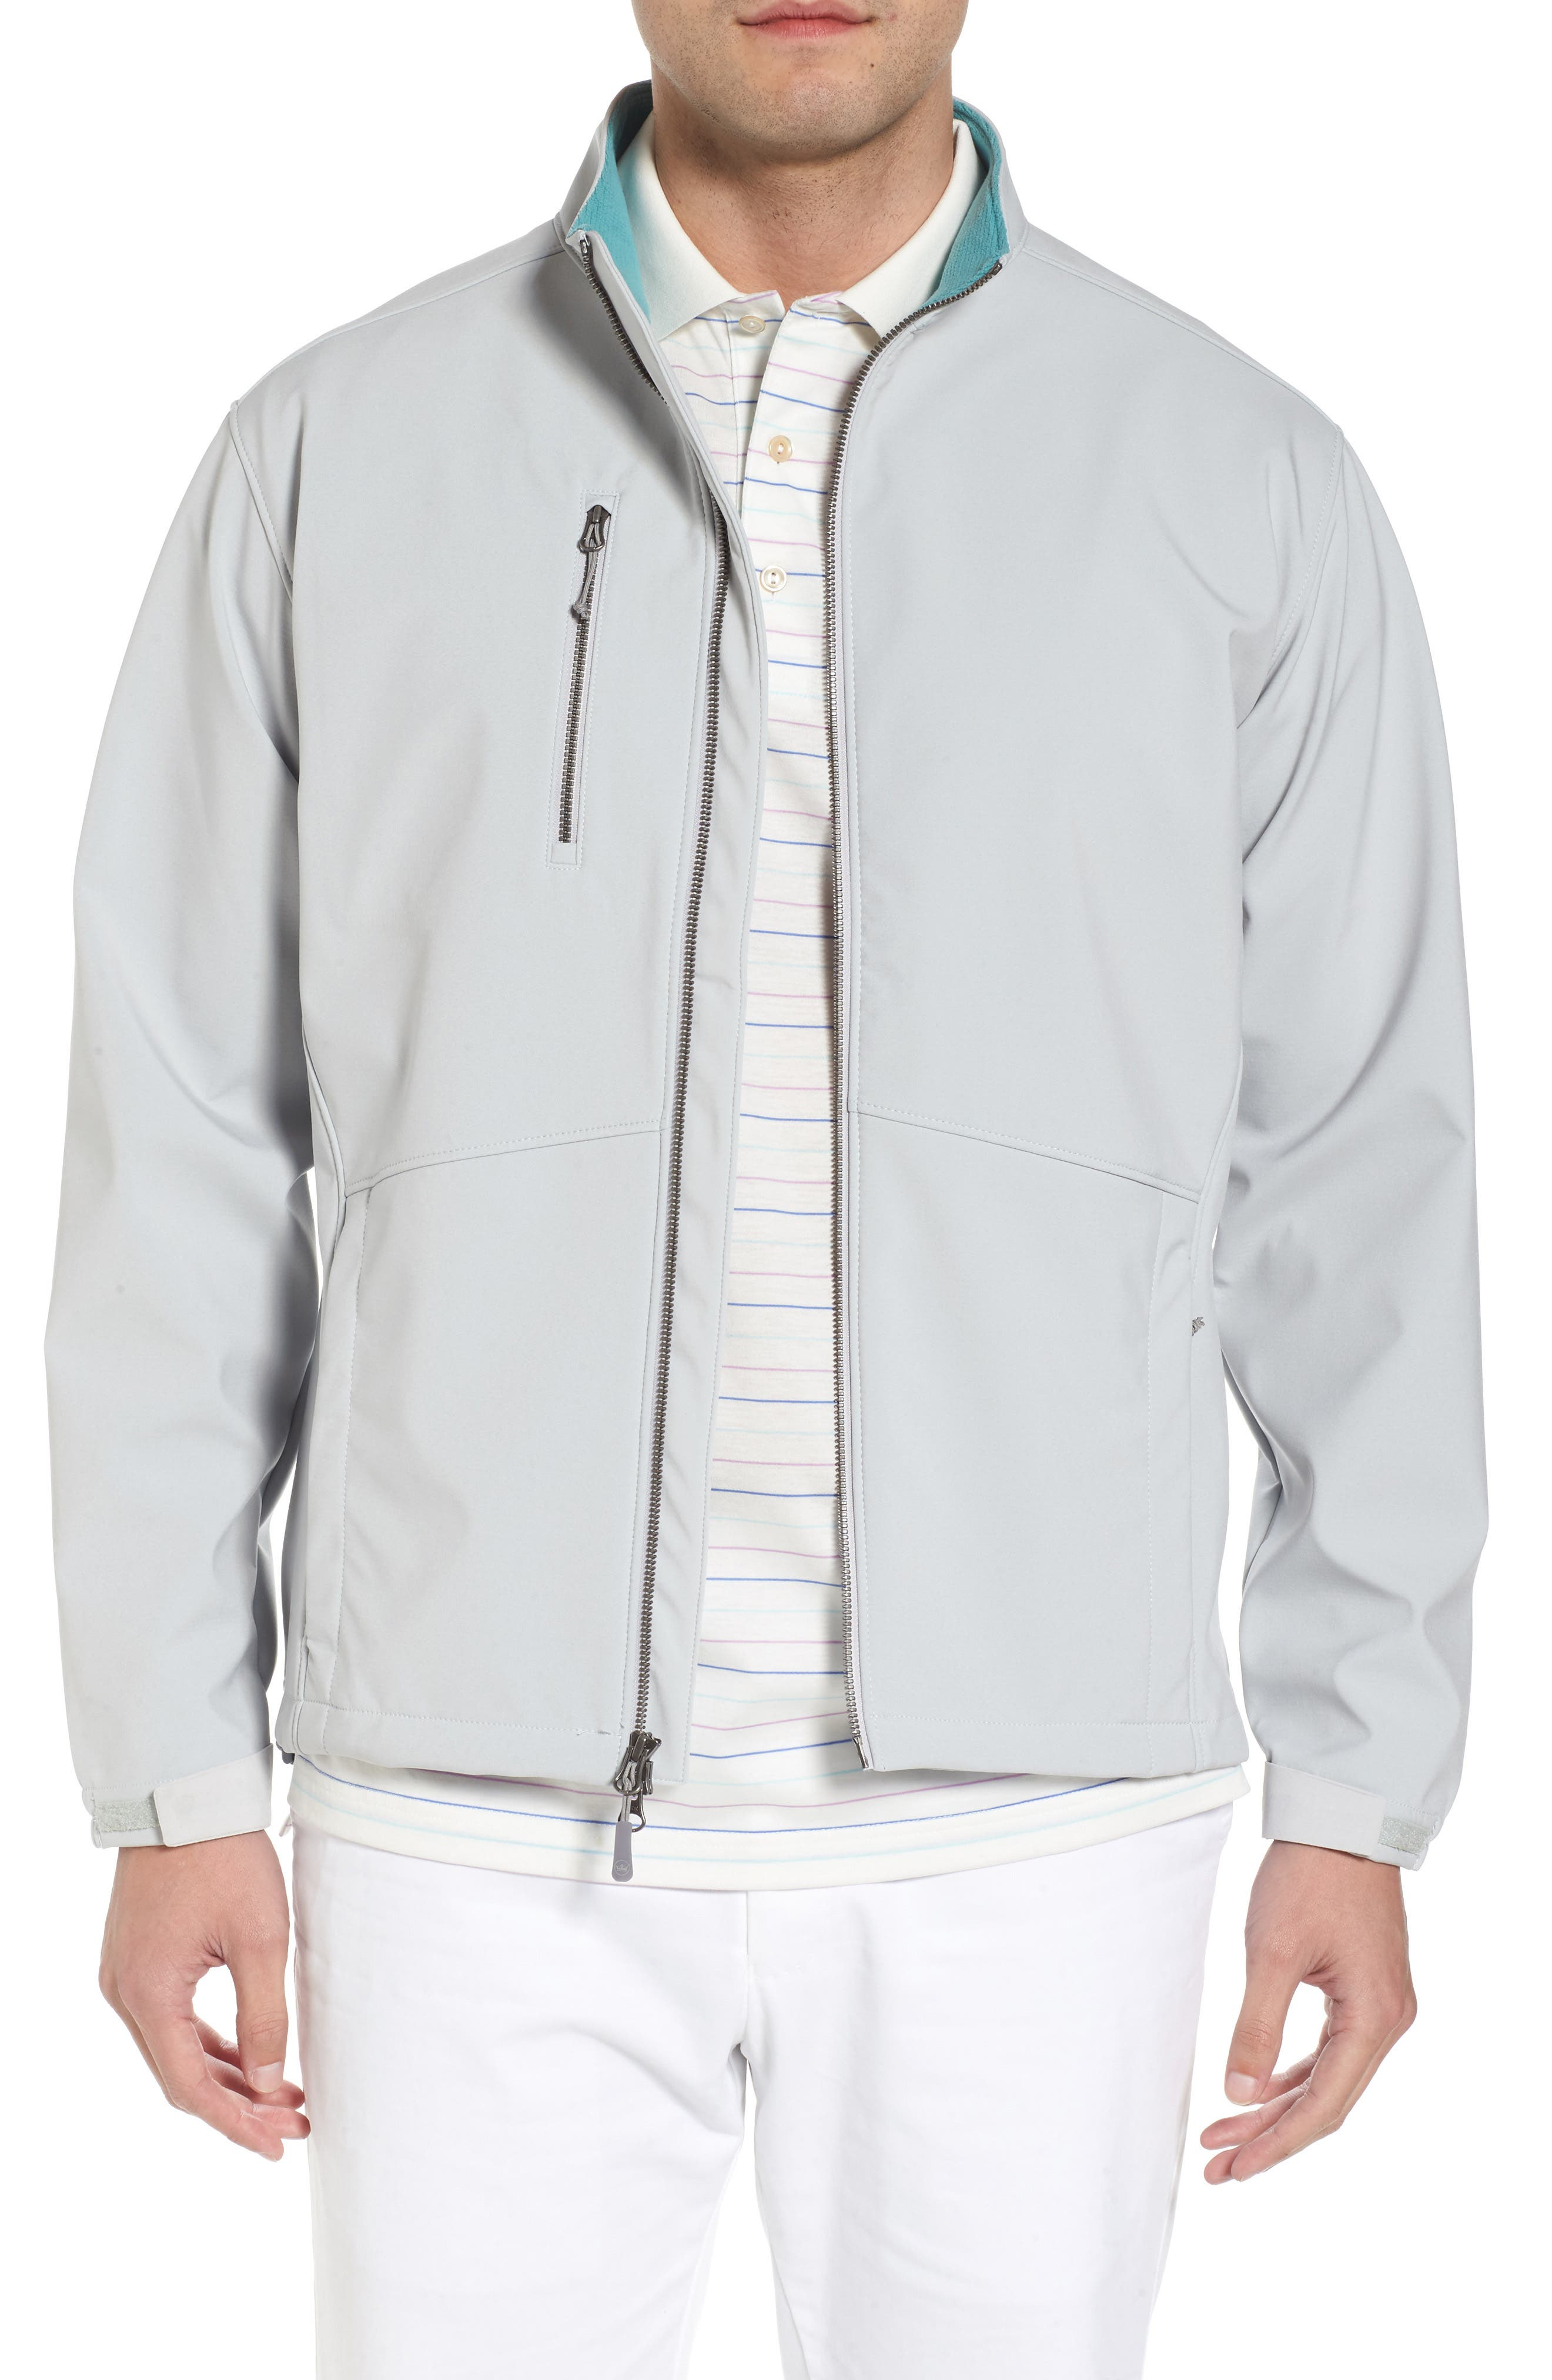 Peter Millar Anchorage 3-Layer Soft Shell Jacket